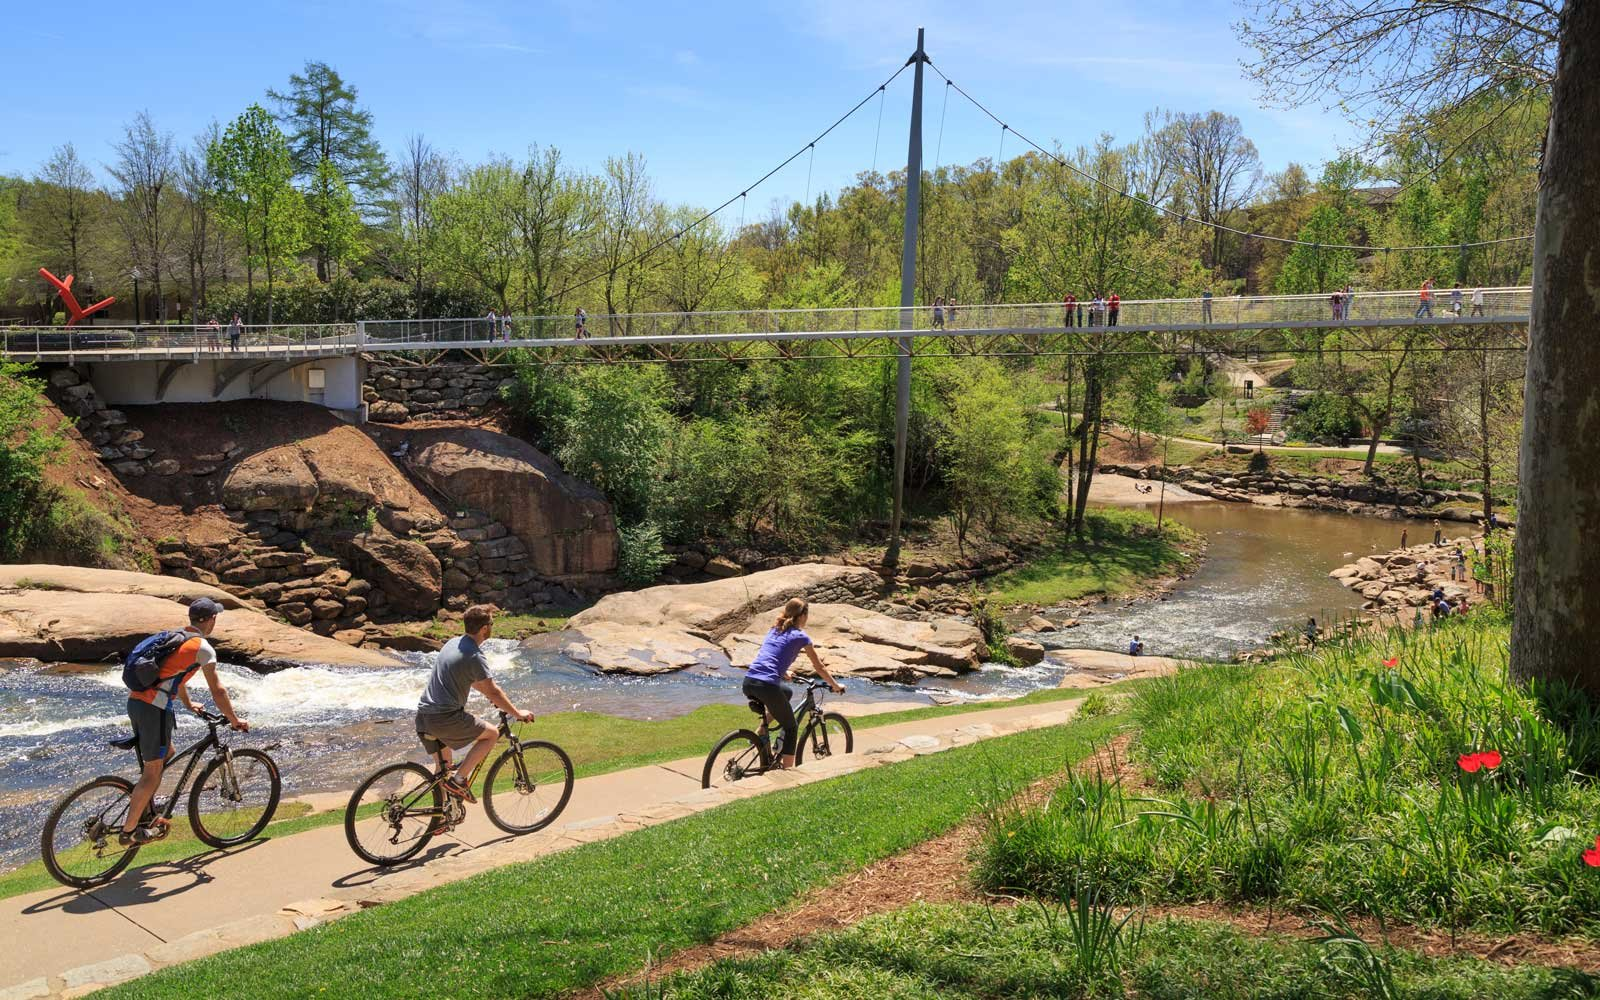 Liberty Bridge and Falls Park on the Reedy in Greenville, South Carolina